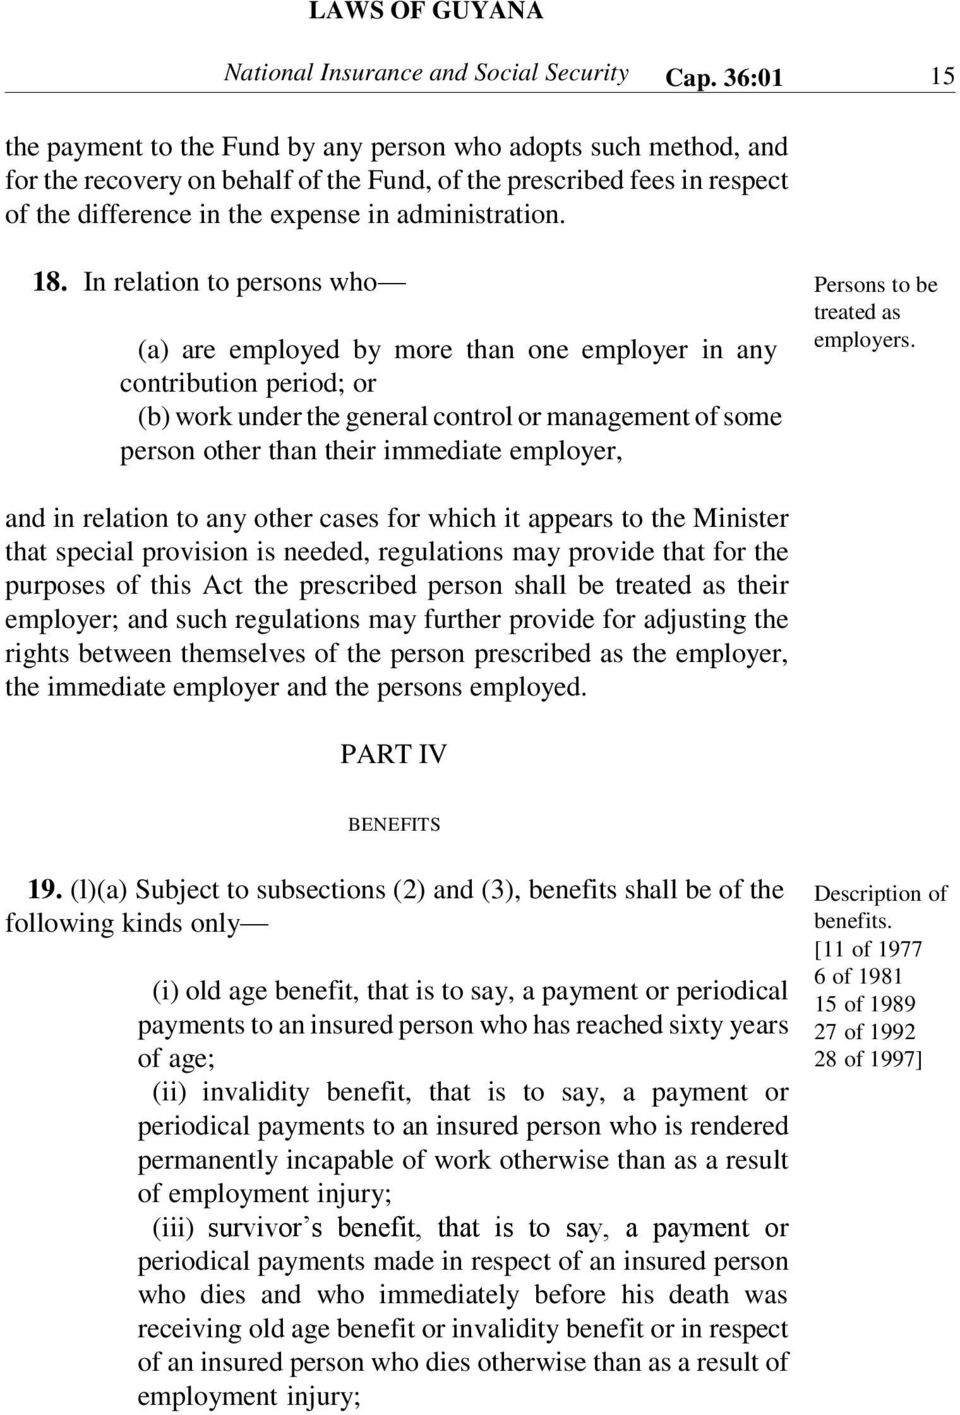 18. In relation to persons who (a) are employed by more than one employer in any contribution period; or (b) work under the general control or management of some person other than their immediate